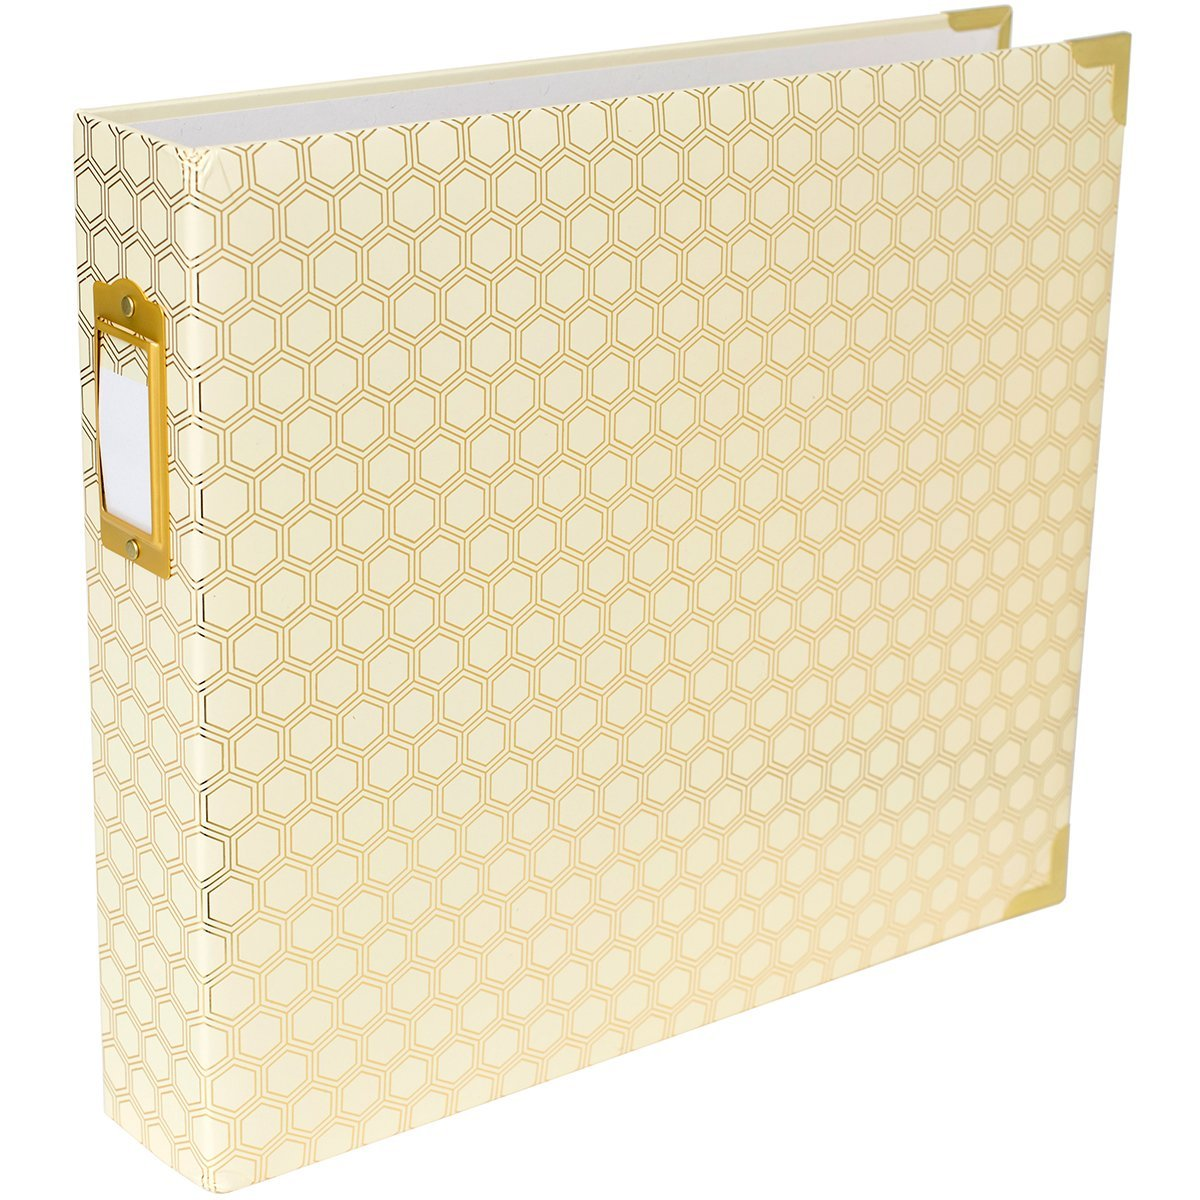 Project Life Album 12 x 12-Designer-Honeycomb-Gold Foil by Project Life